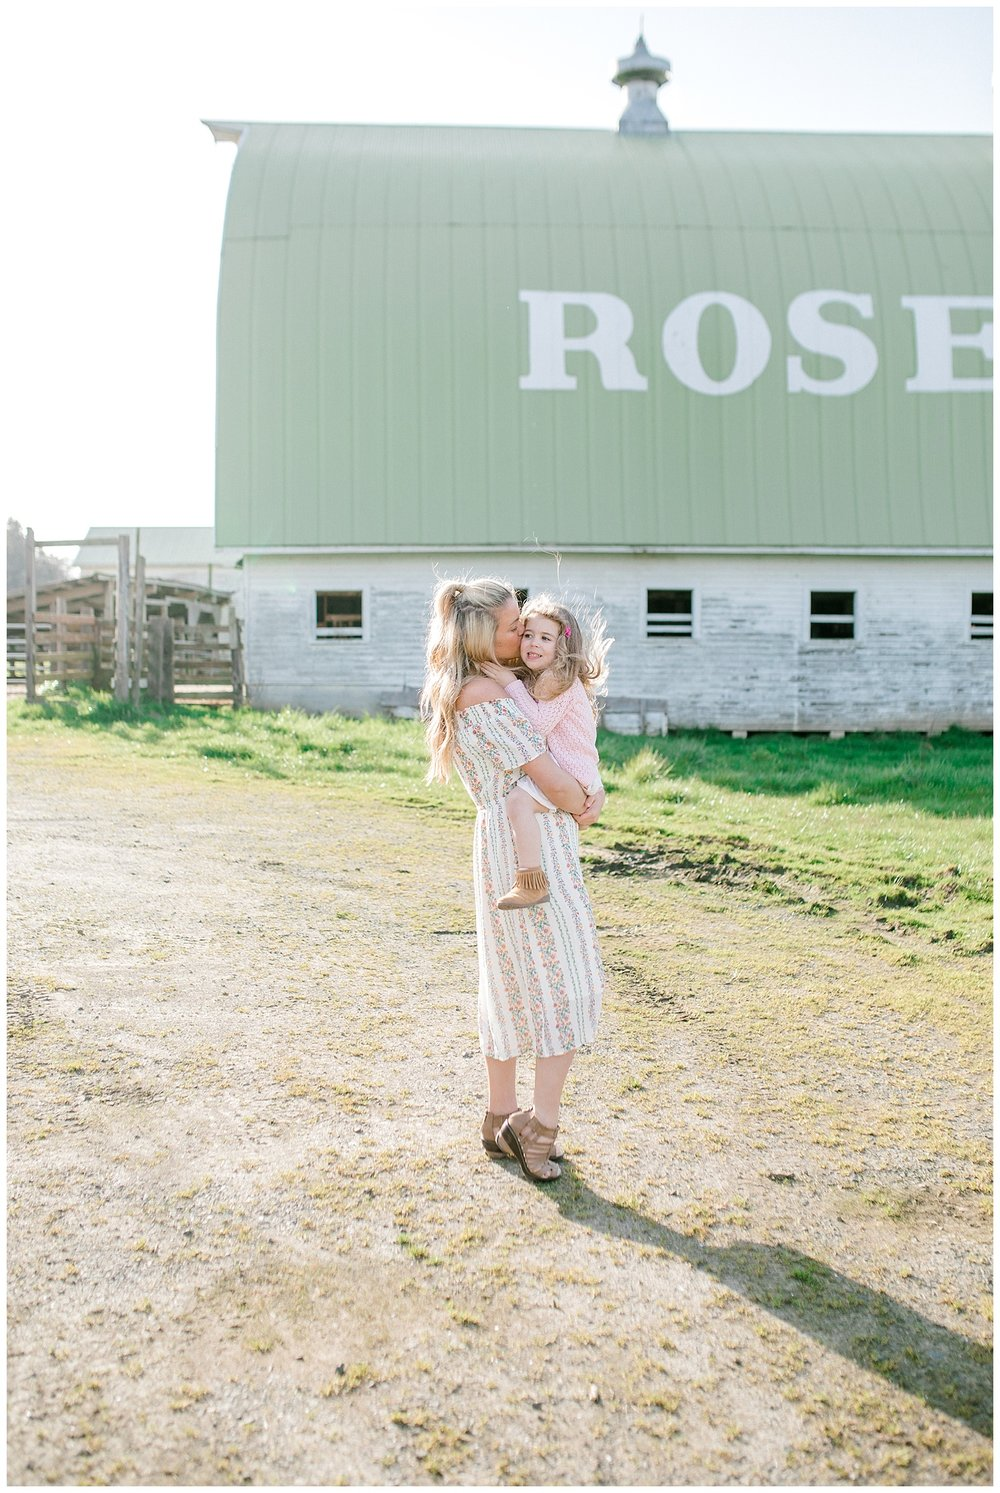 Emma Rose Company Seattle and Portland Wedding and Portrait Photographer | What to Wear for Family Pictures